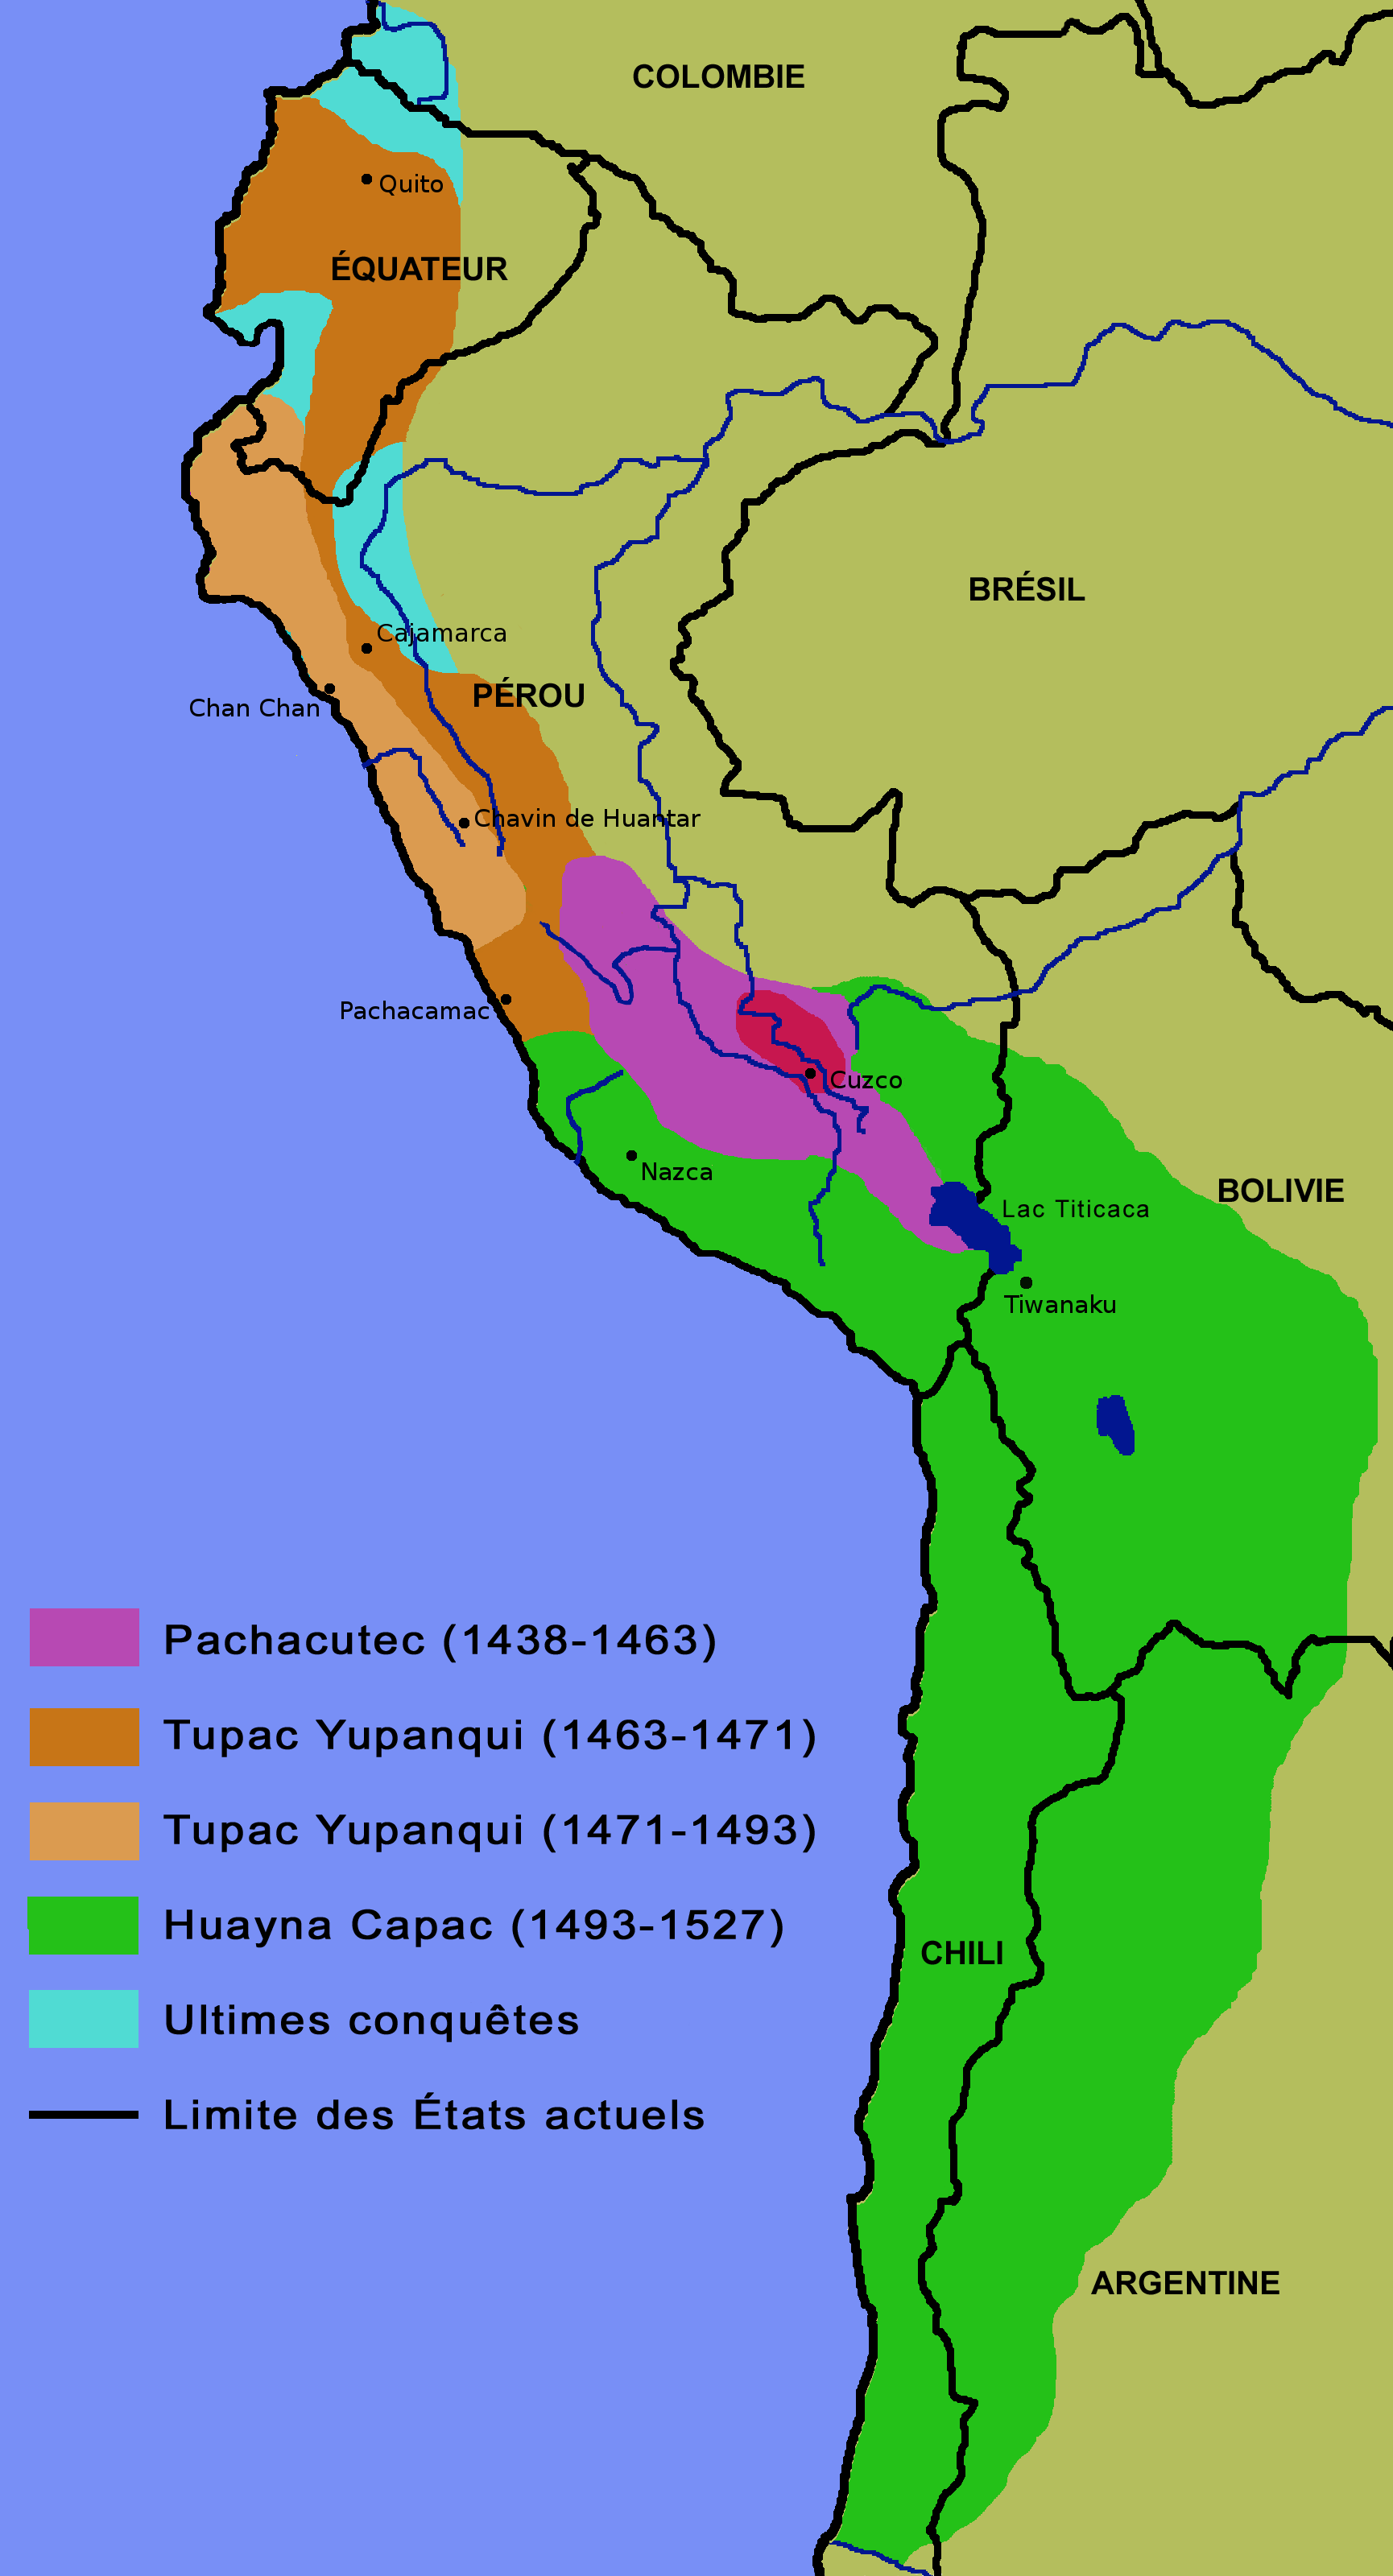 zapotec map, ming dynasty, mesopotamia map, peru map, nazca lines, tenochtitlan map, mexico city map, cheyenne map, columbian exchange, olmec map, mughal empire map, teotihuacan map, mississippian map, tikal map, mongol empire, latin america map, indigenous peoples of the americas, byzantine empire map, machu picchu, francisco pizarro, mesoamerica map, inca society, chichen itza map, andean civilizations, mayan map, aztec map, iraca map, andes mountains map, byzantine empire, inuit map, on inca map